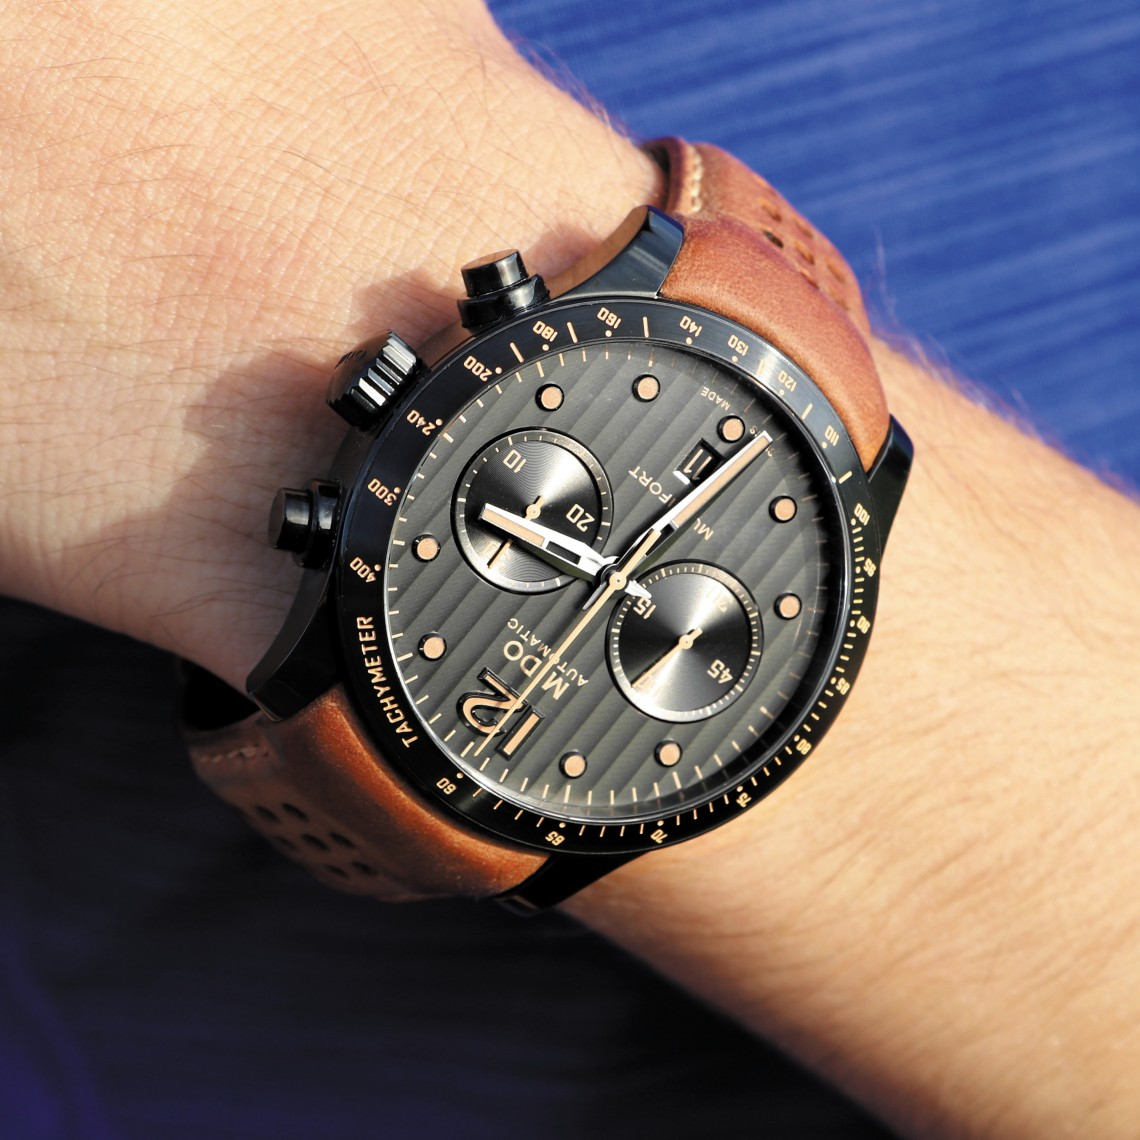 The Best Replica Tag Heuer Watches